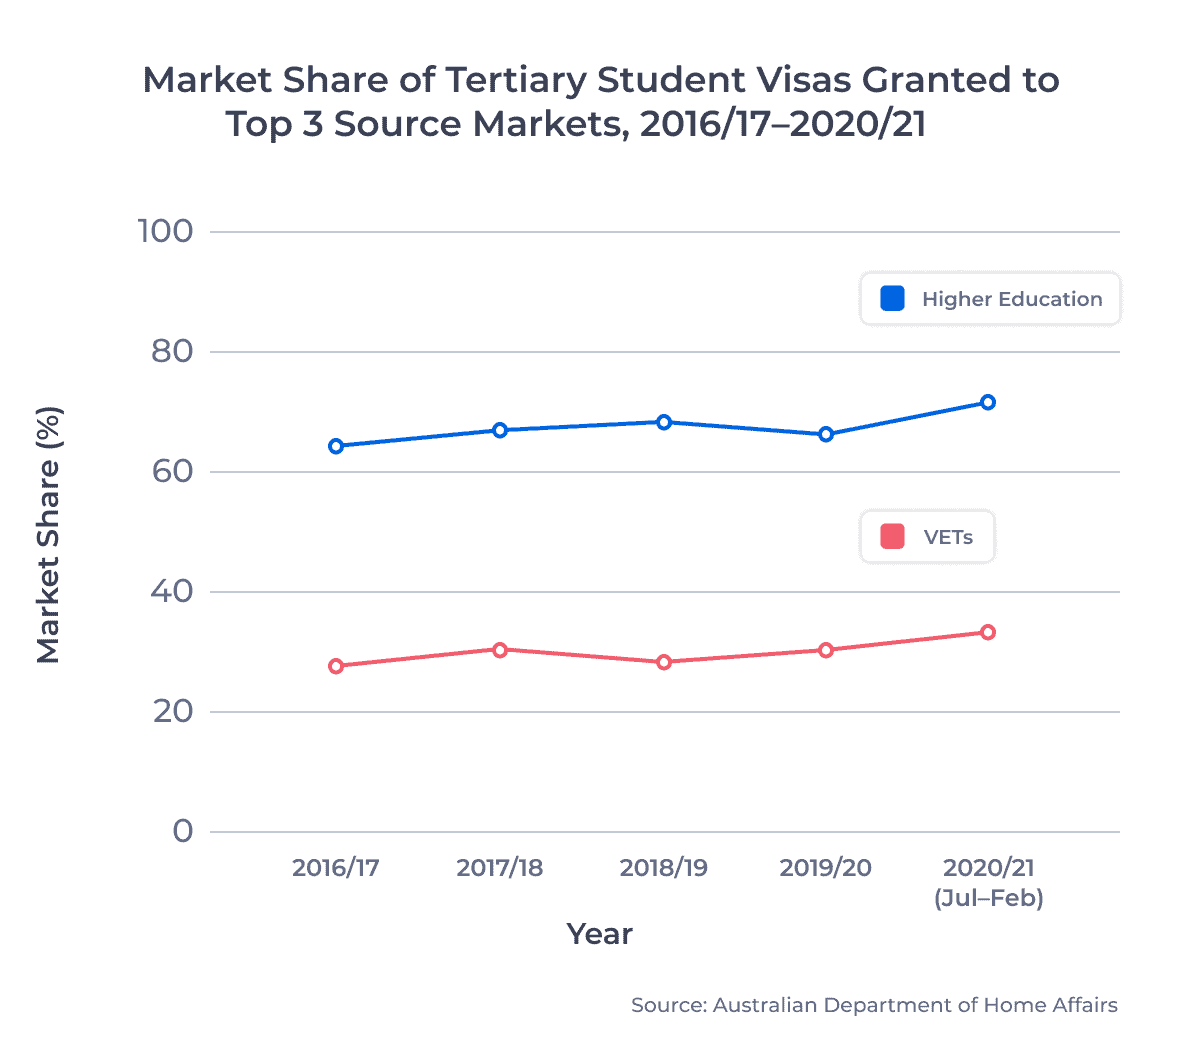 Market Share of Tertiary Education Visas Issued, Top 3 Source Markets, 2016/17-2020/21 (horizontal line graph)